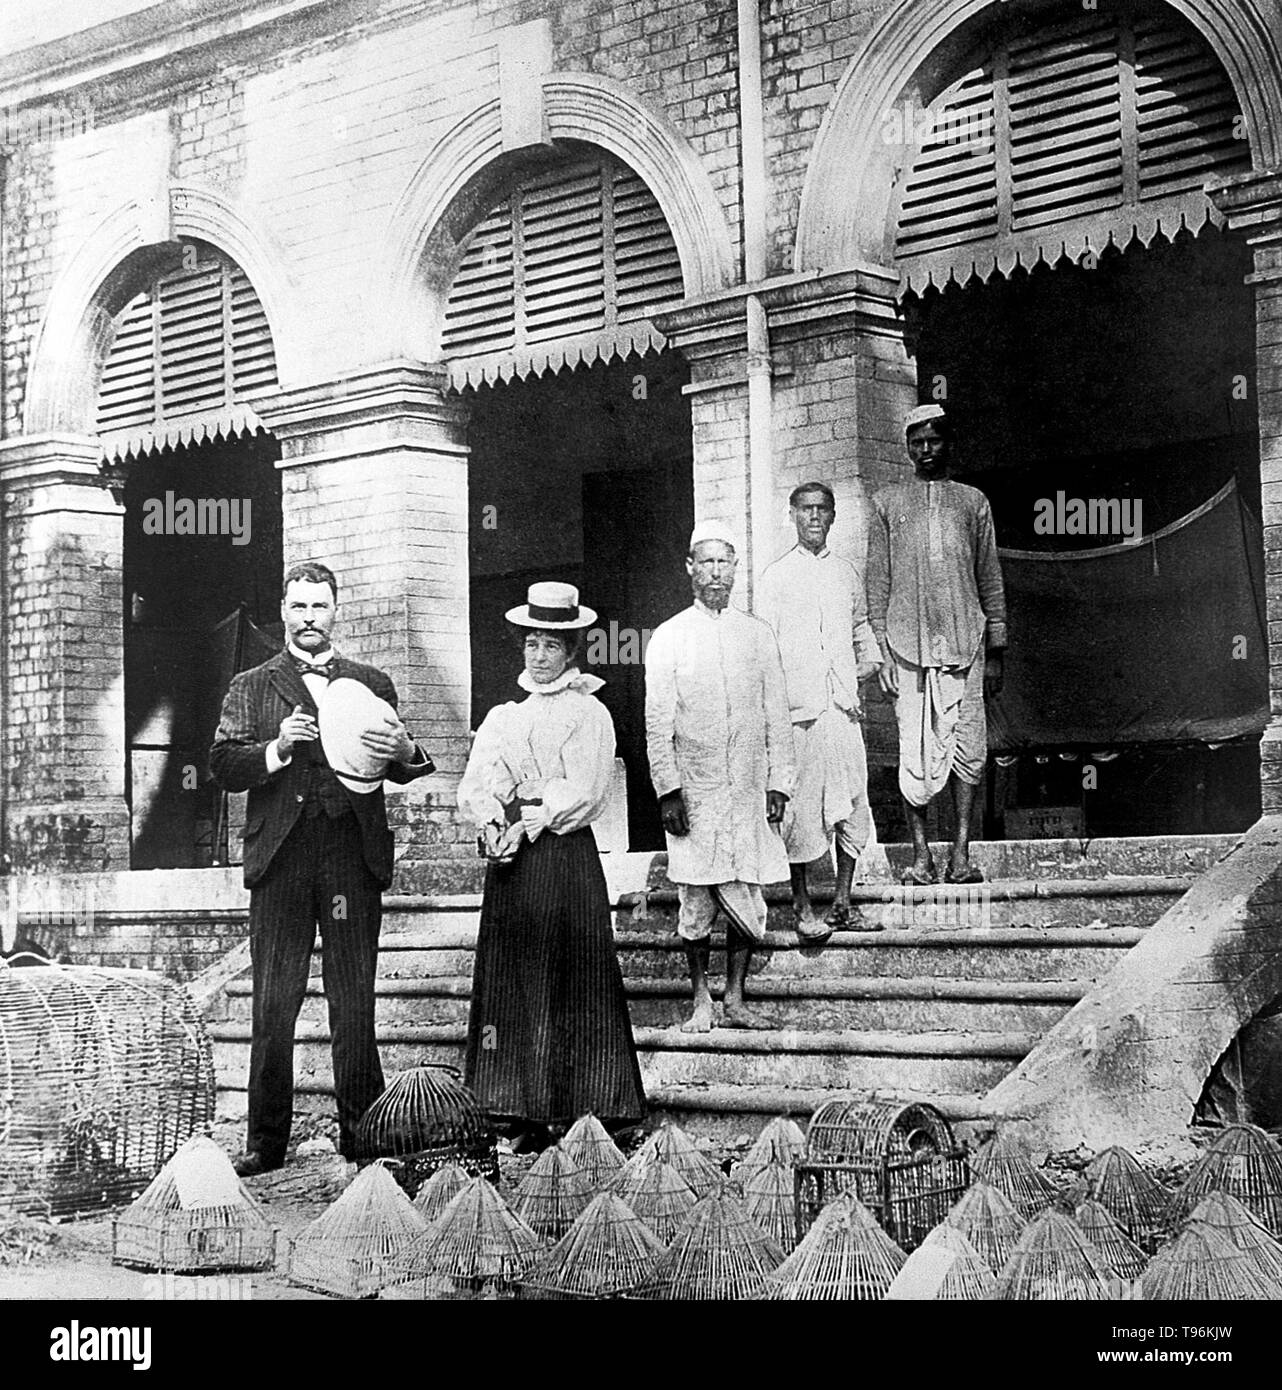 Ross on the steps of laboratory in Calcutta, 1898. With Mrs Ross, Mahomed Bux and laboratory assistants in the foreground, cages for malarial birds. Sir Ronald Ross (May 13, 1857 - September, 16 1932) was a British doctor and polymath. He was born in India where his grandfather contracted malaria and he vowed at an early age to find a cure. At the age of eight, he was sent to England for his education. He began to study medicine in 1875, passed his final examination in 1880 and joined the Indian Medical Service in 1881. He began his research into malaria in 1892. In 1897 his discovery of the m - Stock Image